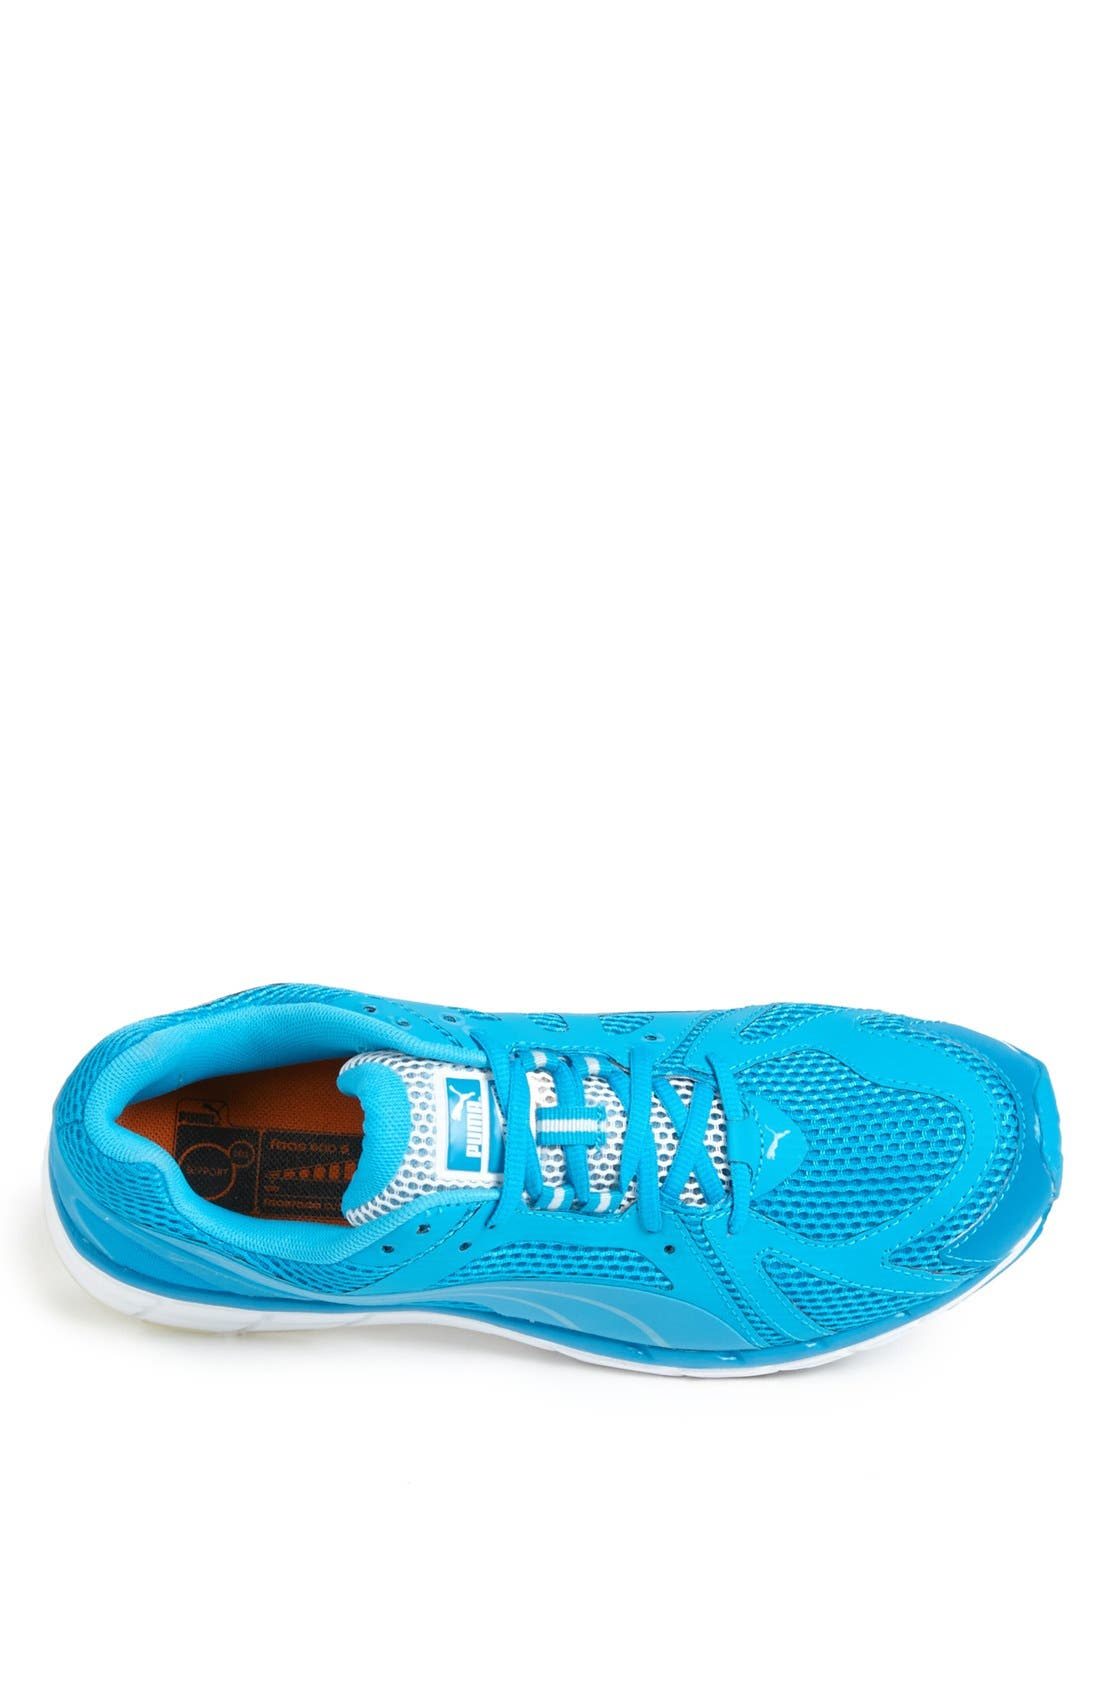 Alternate Image 3  - PUMA 'Faas 600 S Glow' Running Shoe (Men)